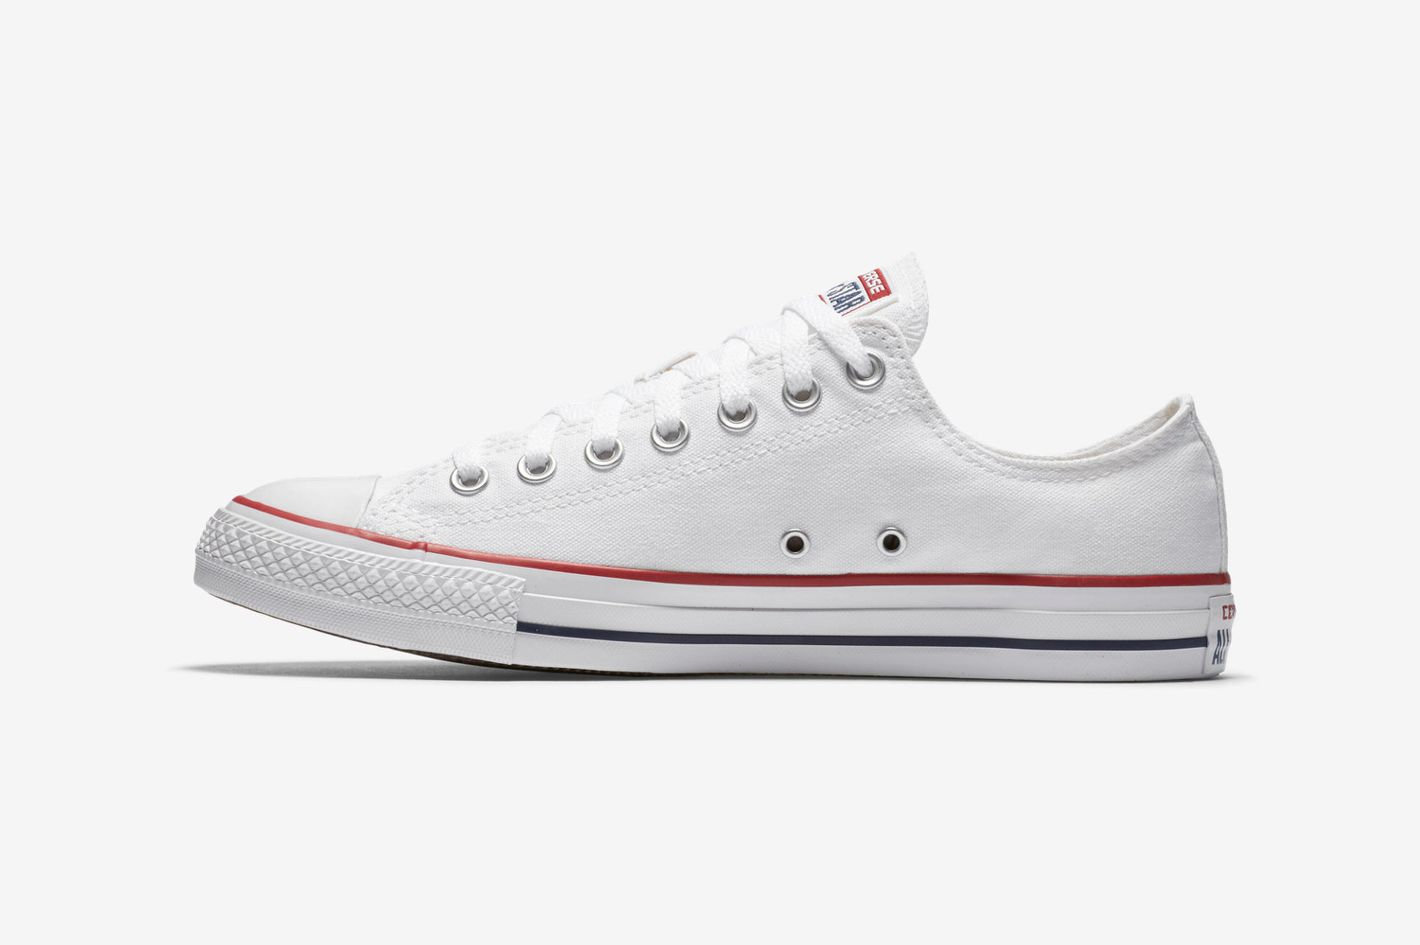 b6ae31a62836 Converse Chuck Taylor All Star Low Top